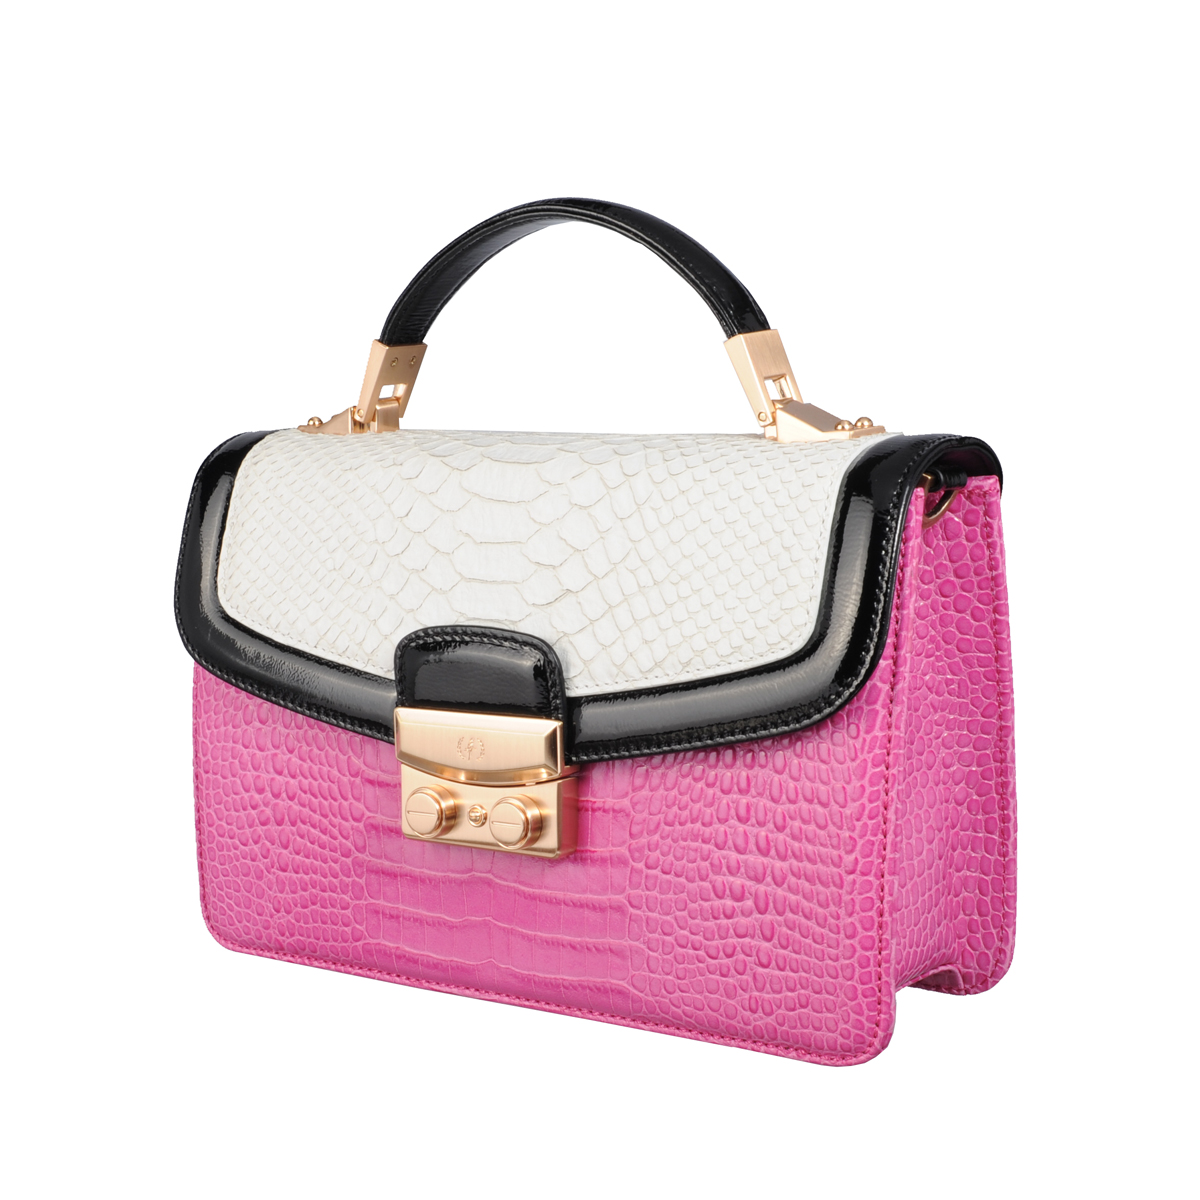 SHOULDER BAG, BLAIR X-BODY, CROCO & WILD SNAKE & PATENT, FUCHSIA  MULTI